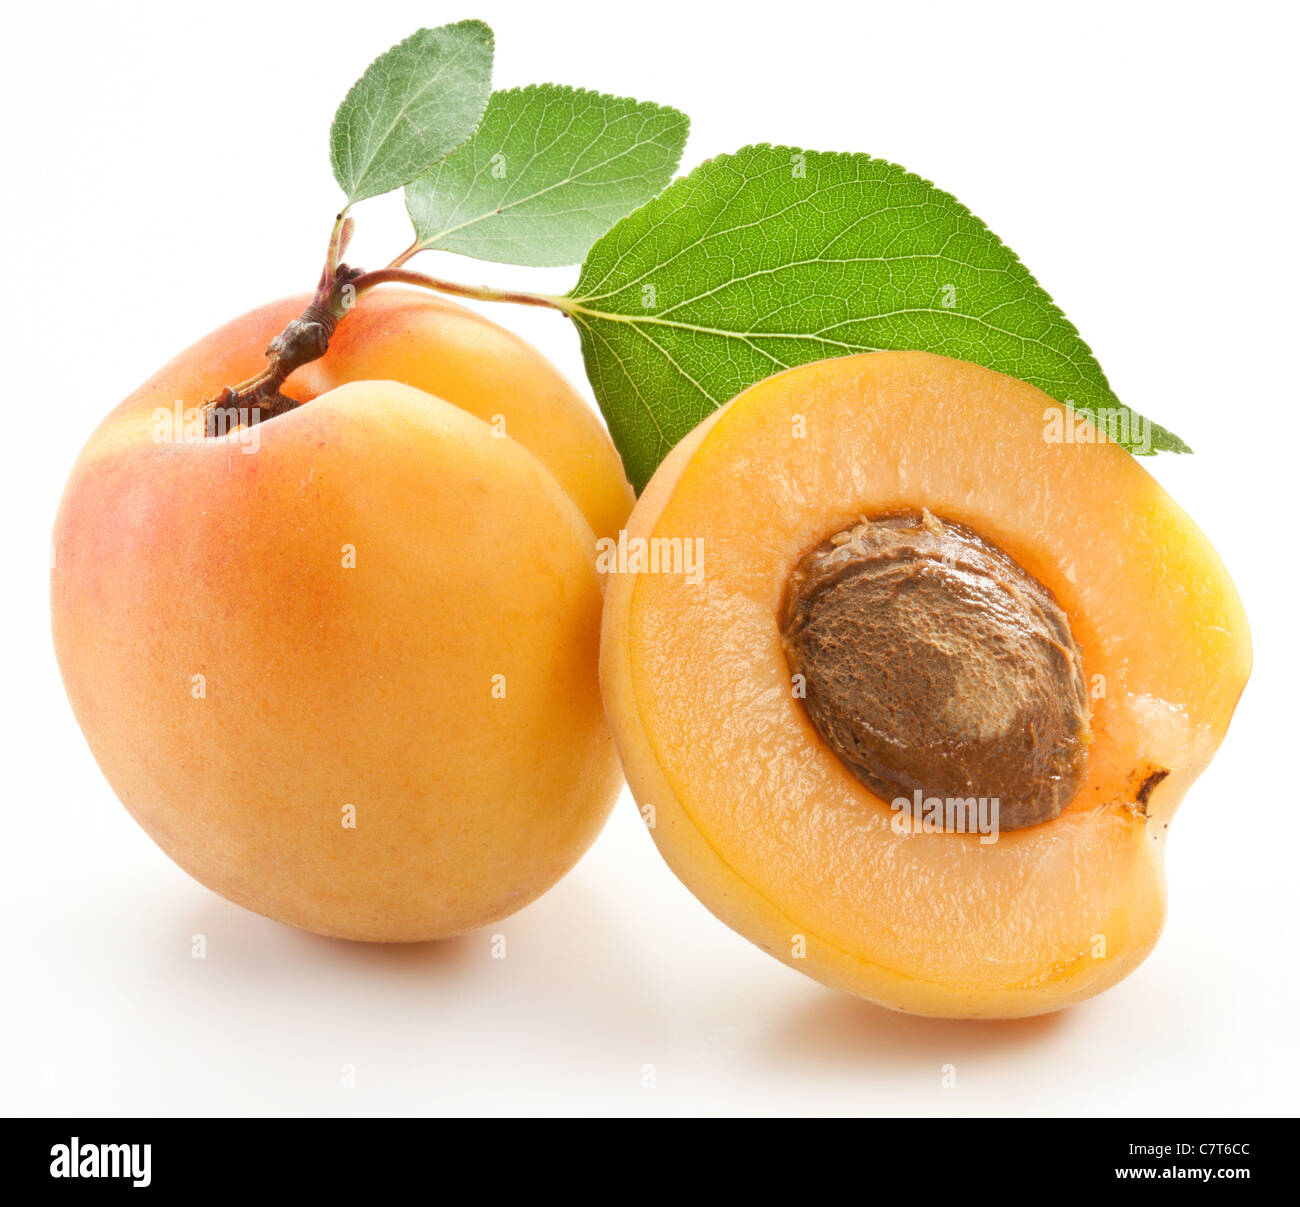 Apricots with leaves on a white background. - Stock Image